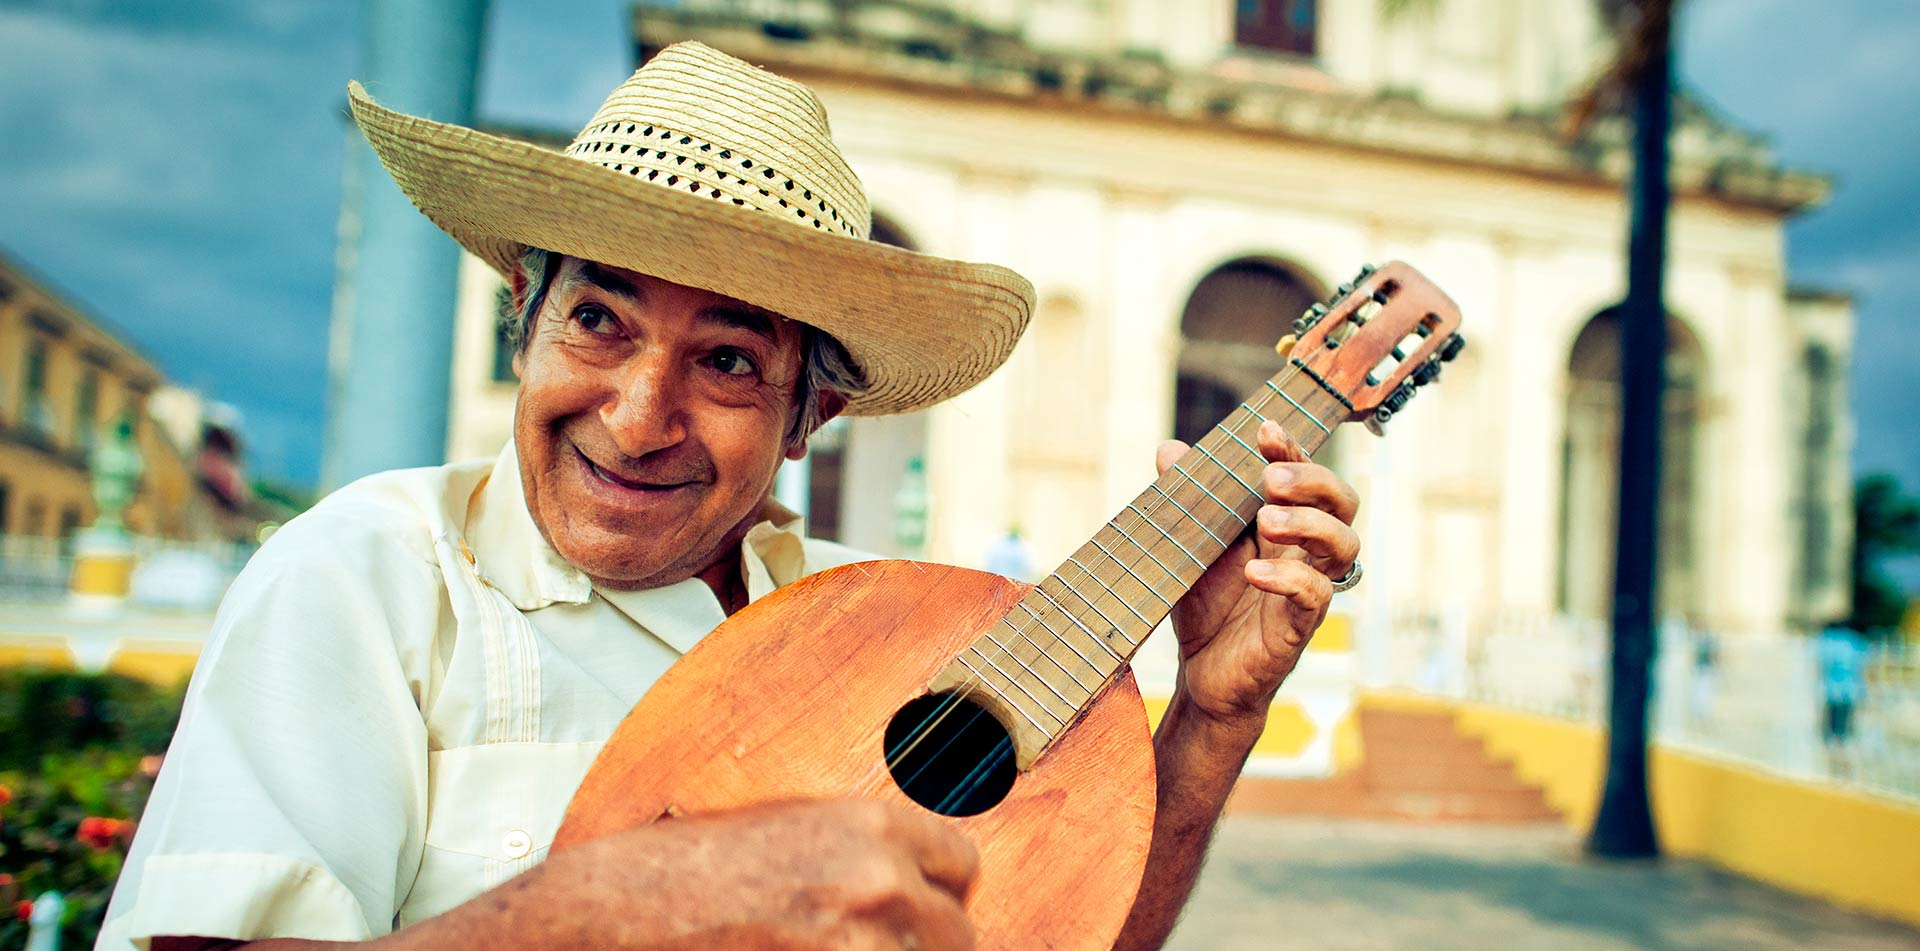 North America Caribbean Cuba Havana music art man hat mandolin local smile happy - luxury vacation destinations